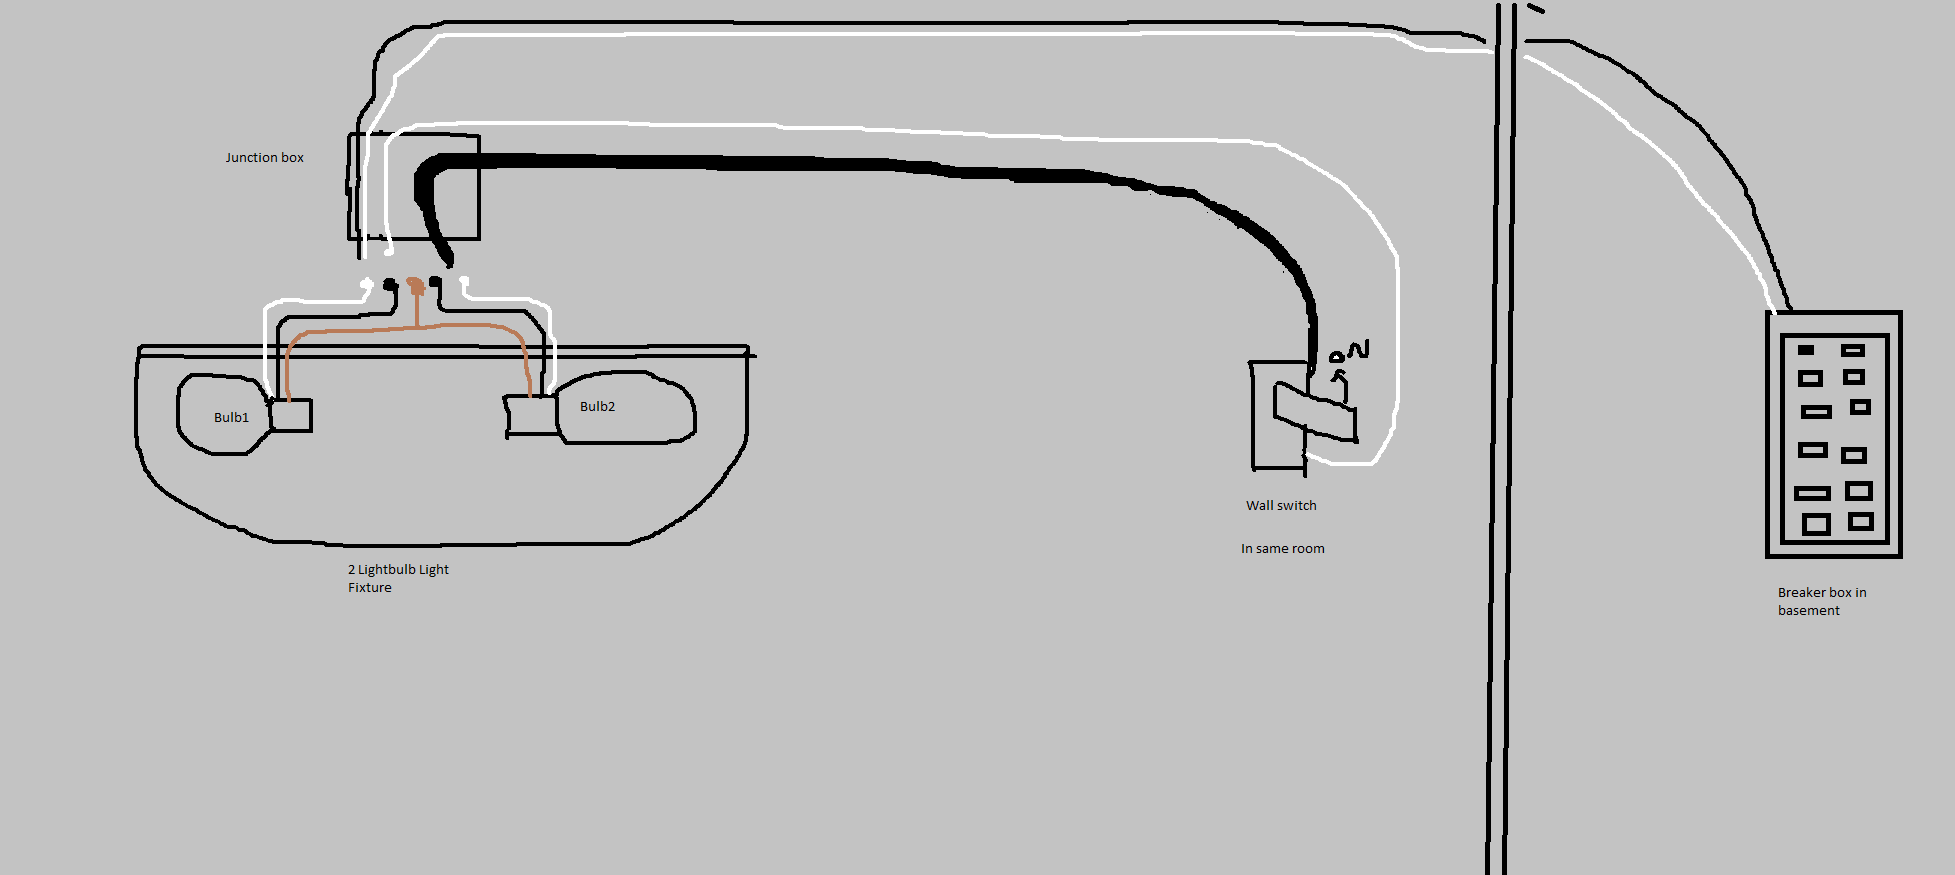 wiring diagram for spotlights in ceiling 2003 gmc envoy parts electrical 4 wires box 2 on new light help